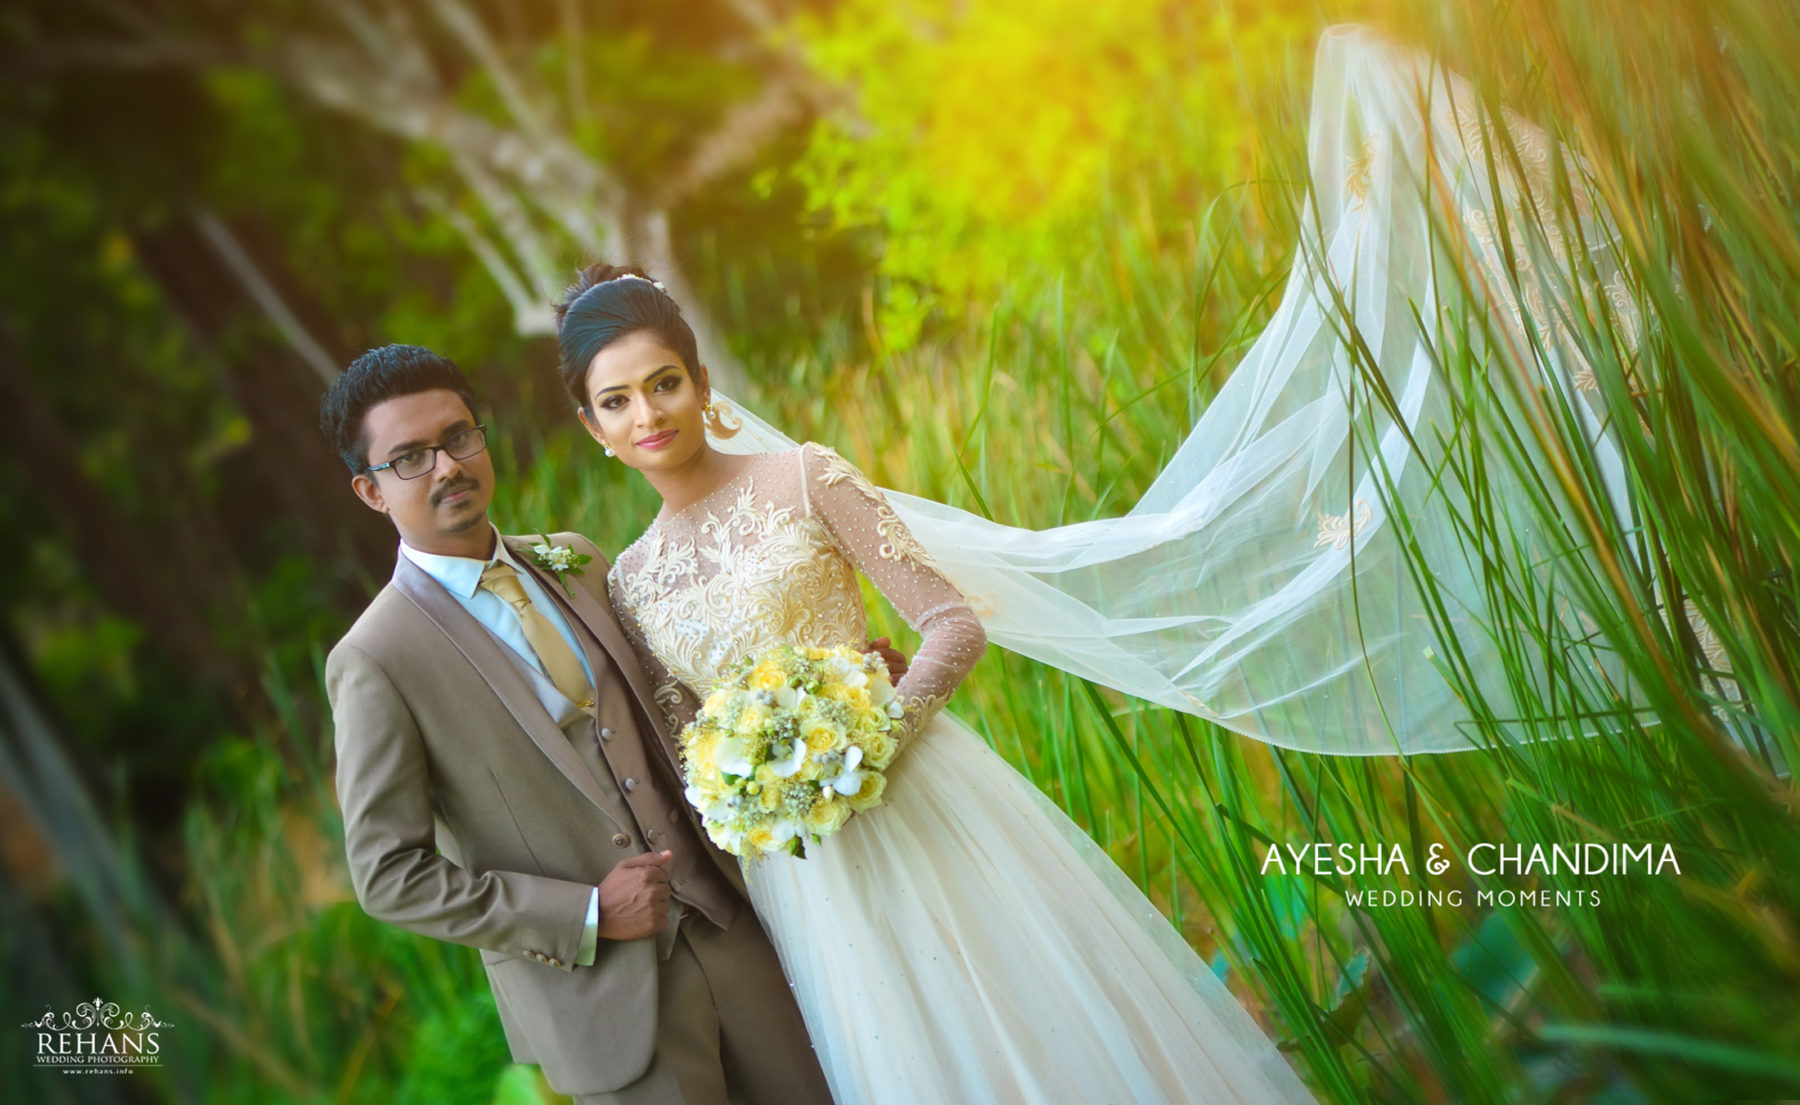 Rehans photography wedding photography in sri lanka our wedding albums blognews contact junglespirit Choice Image